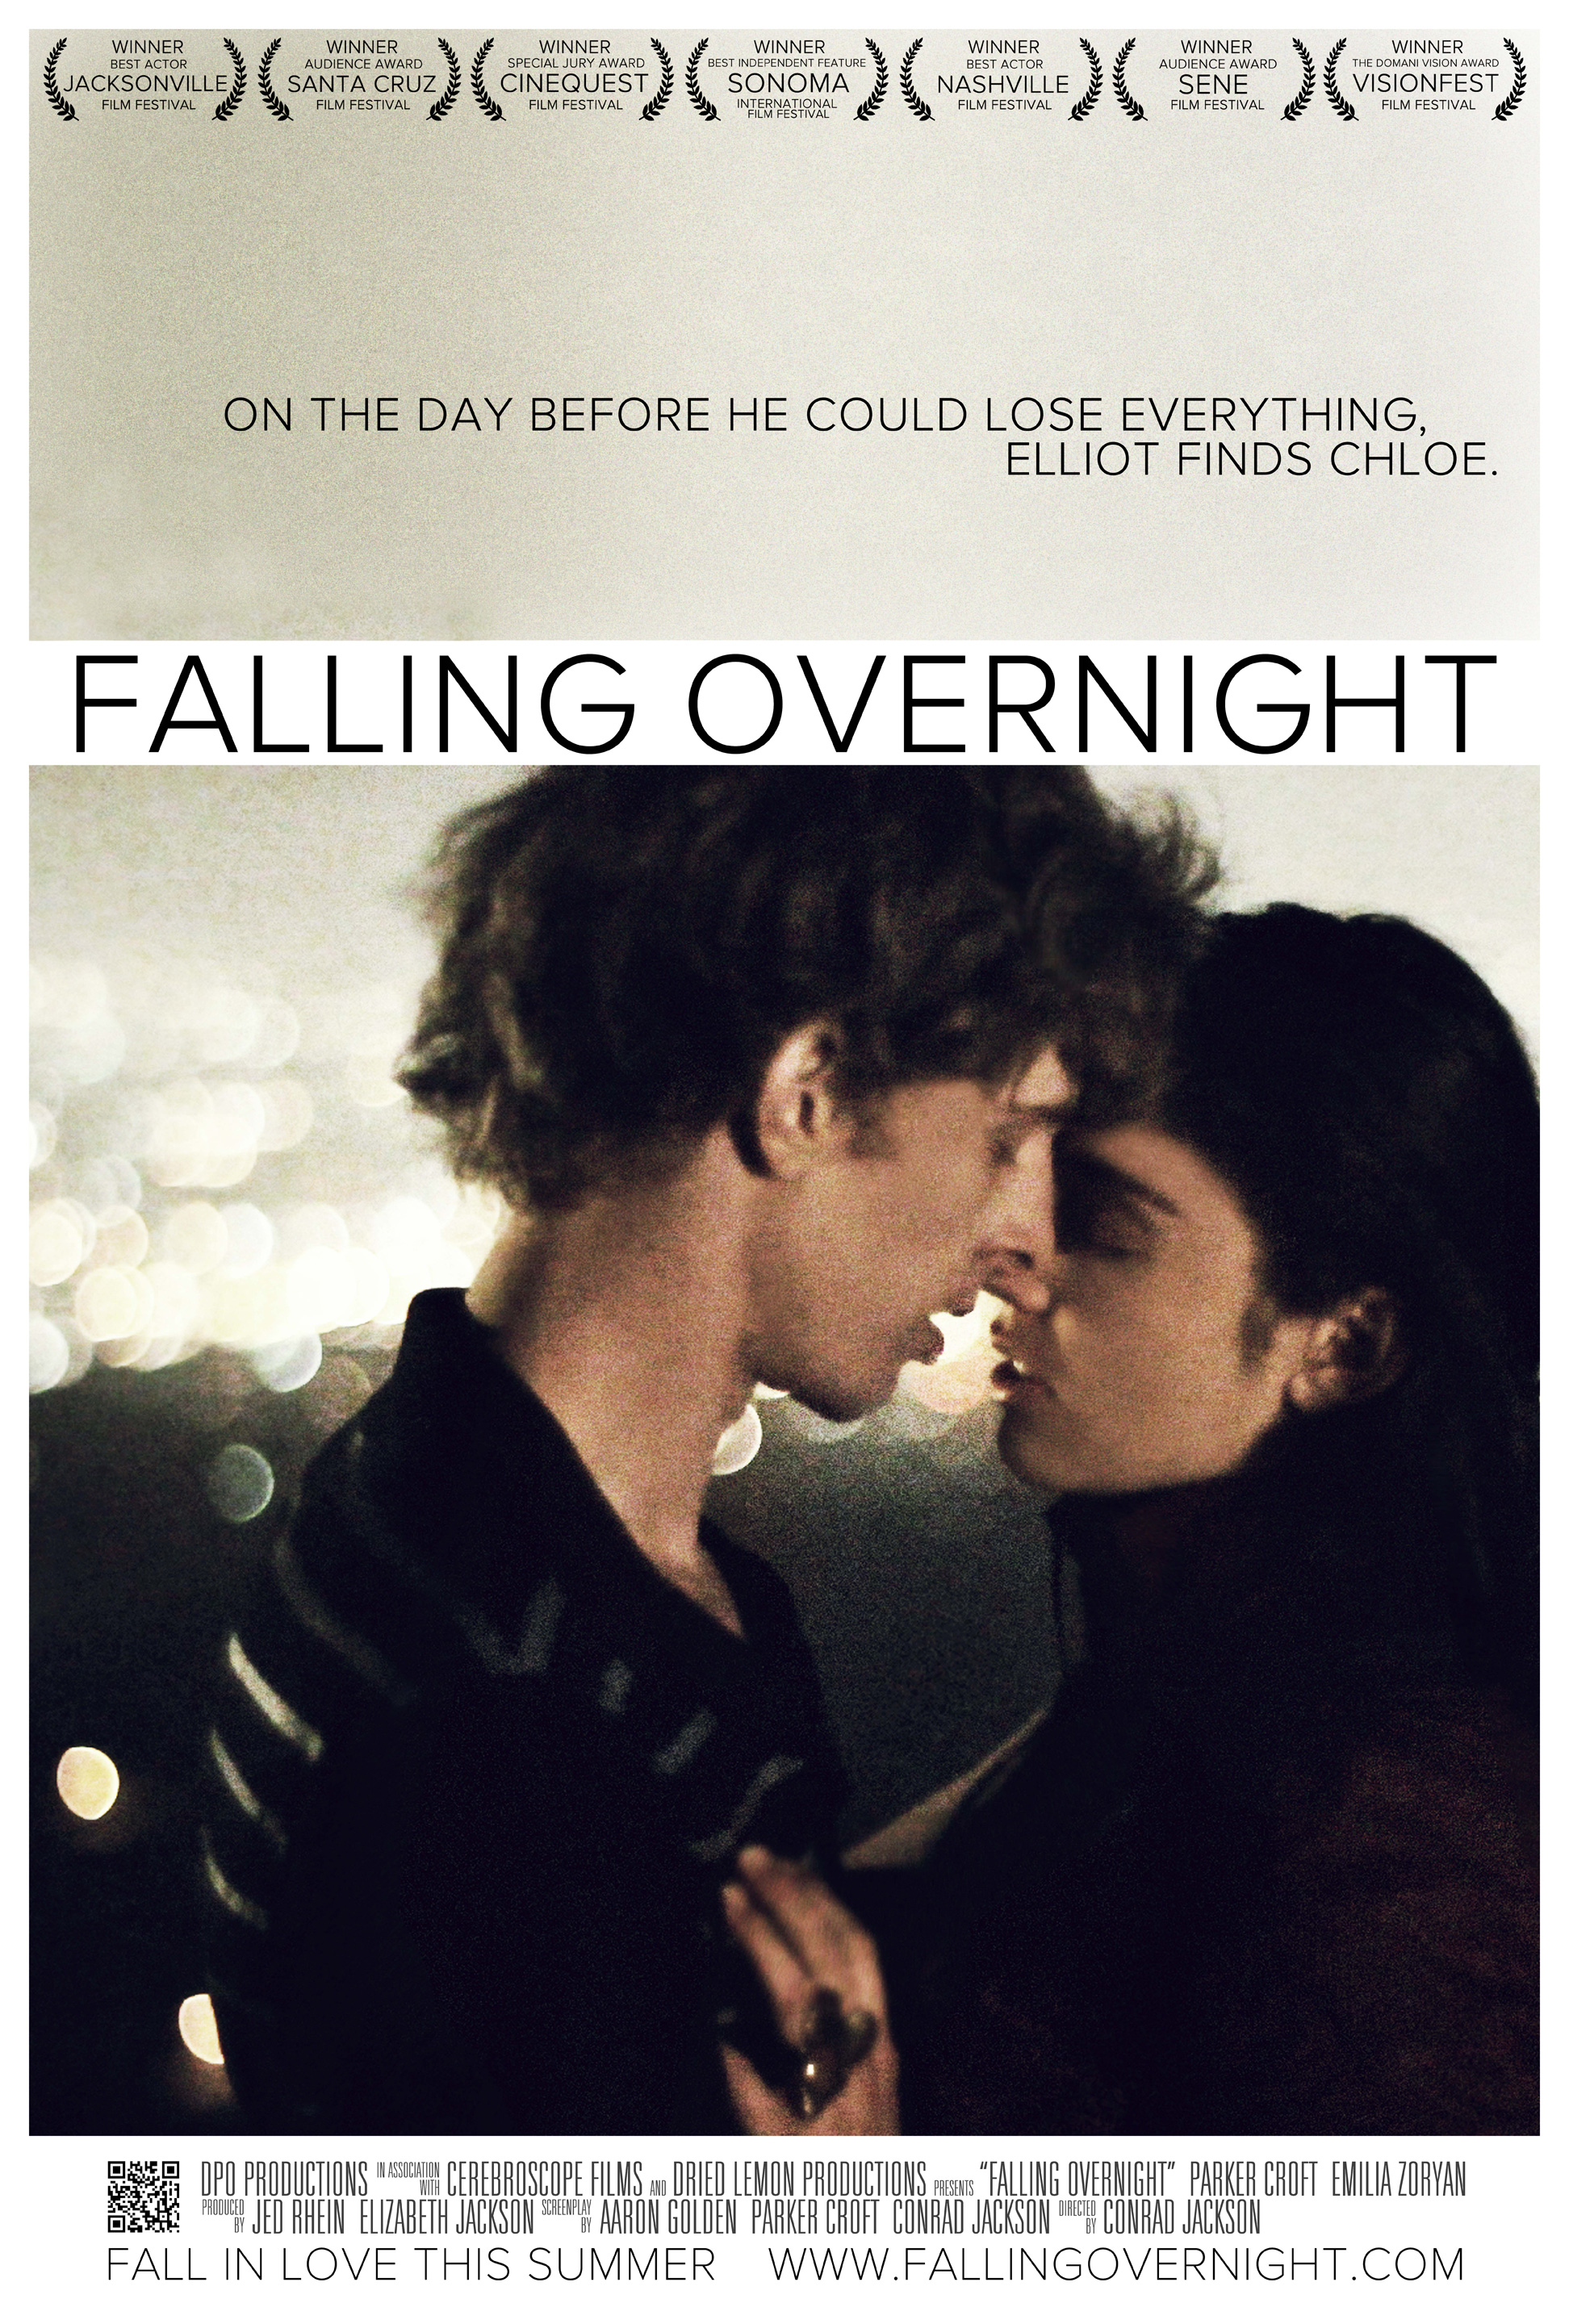 Award winning 'Falling Overnight' bringing romantics to the screen